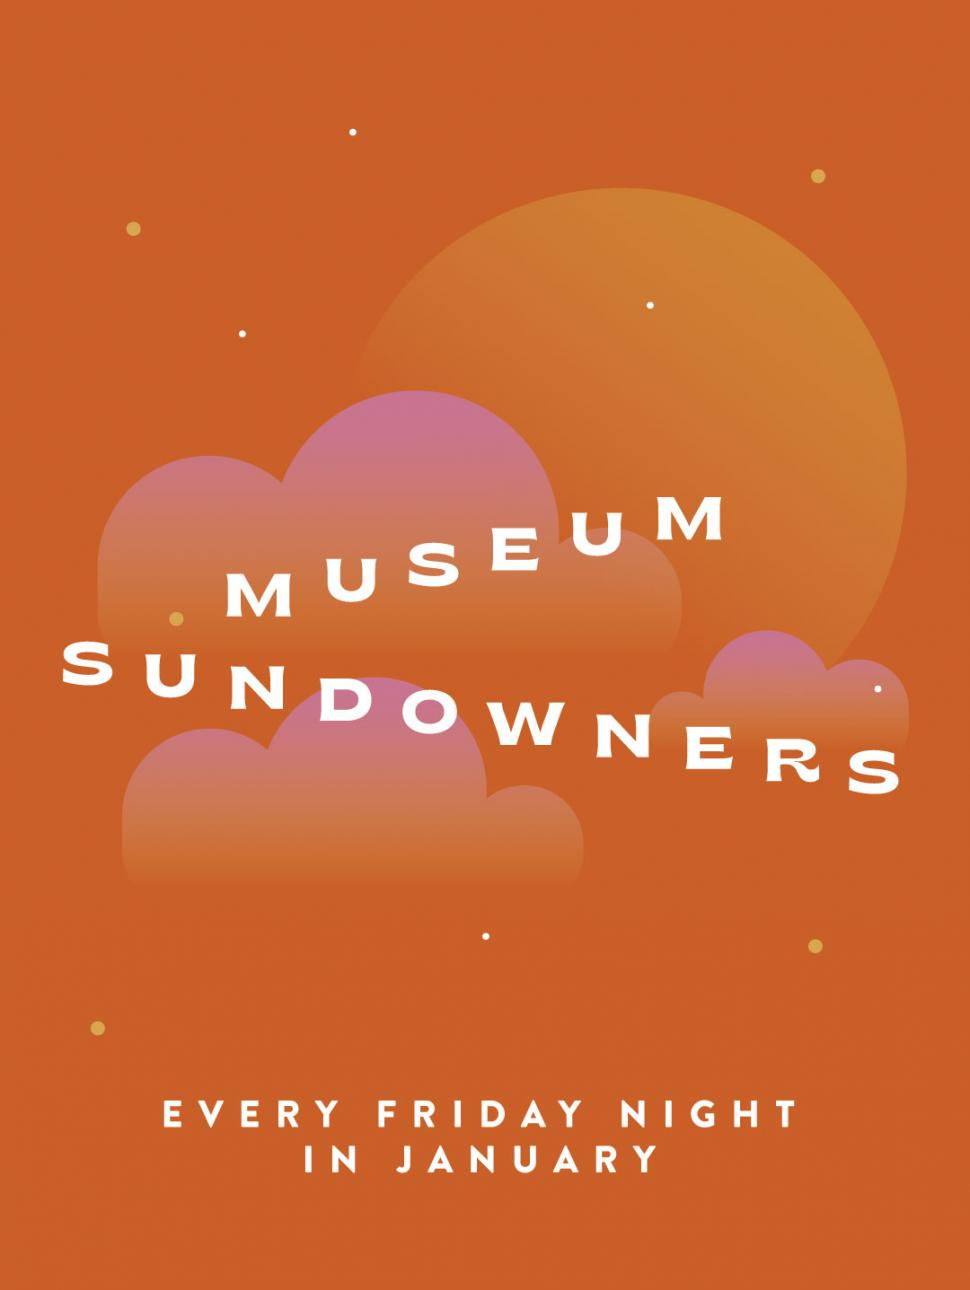 Museum Sundowners (late-night openings)